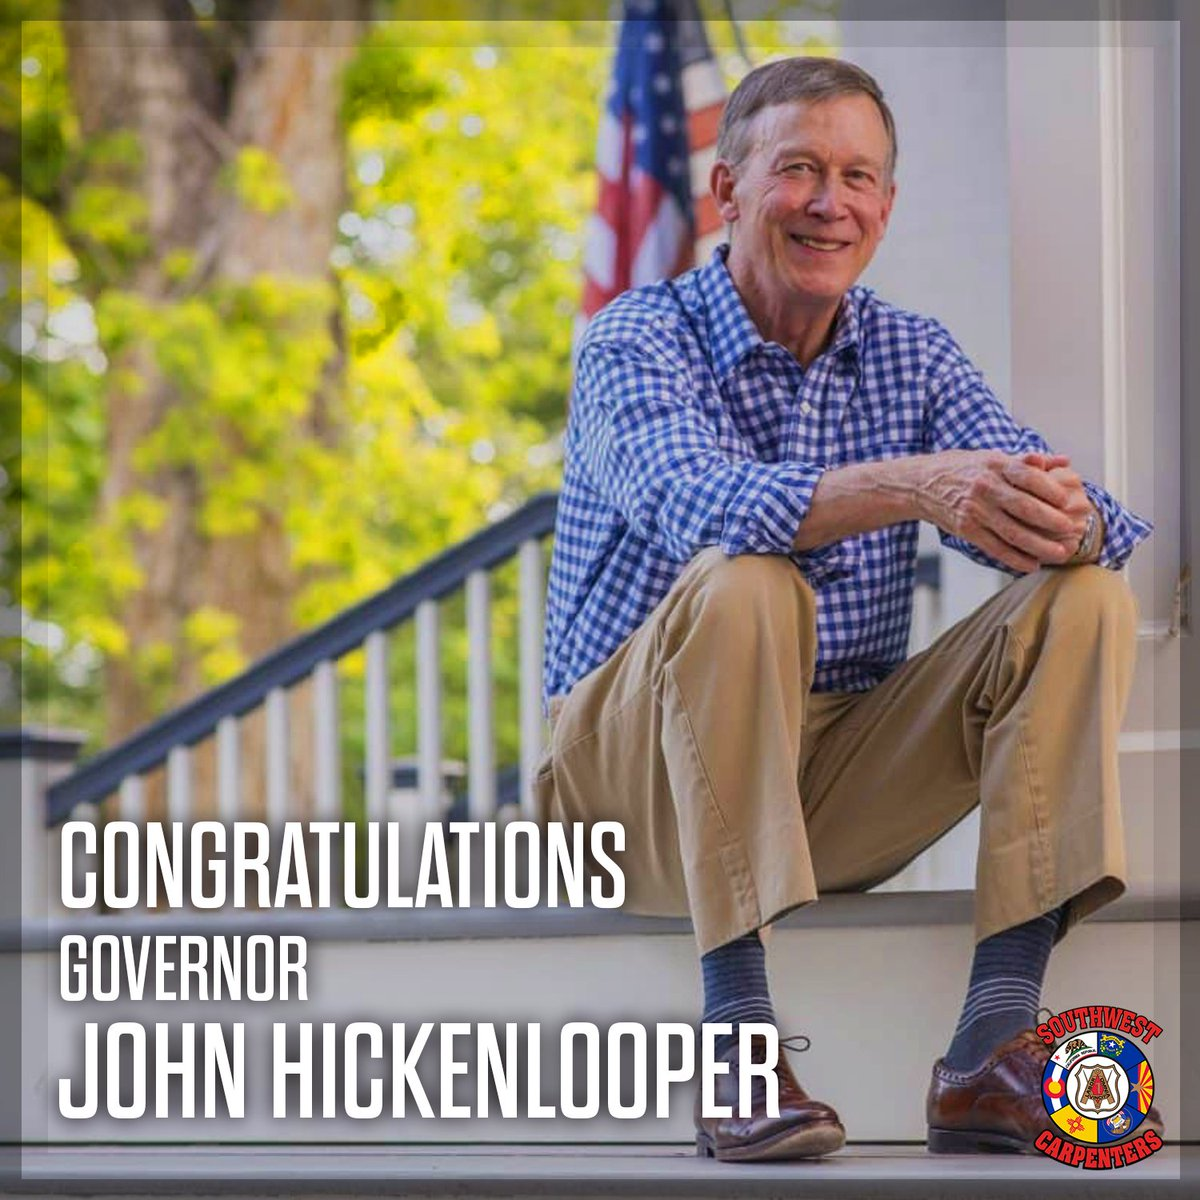 Congratulations to carpenter-endorsed @Hickenlooper on his victory in yesterday's primary! As a US Senator, Governor Hickenlooper will fight to protect our wages & benefits and improve investment in #Colorado's infrastructure! On to November! #SWCarpenters #ColoradoPrimary #COSen